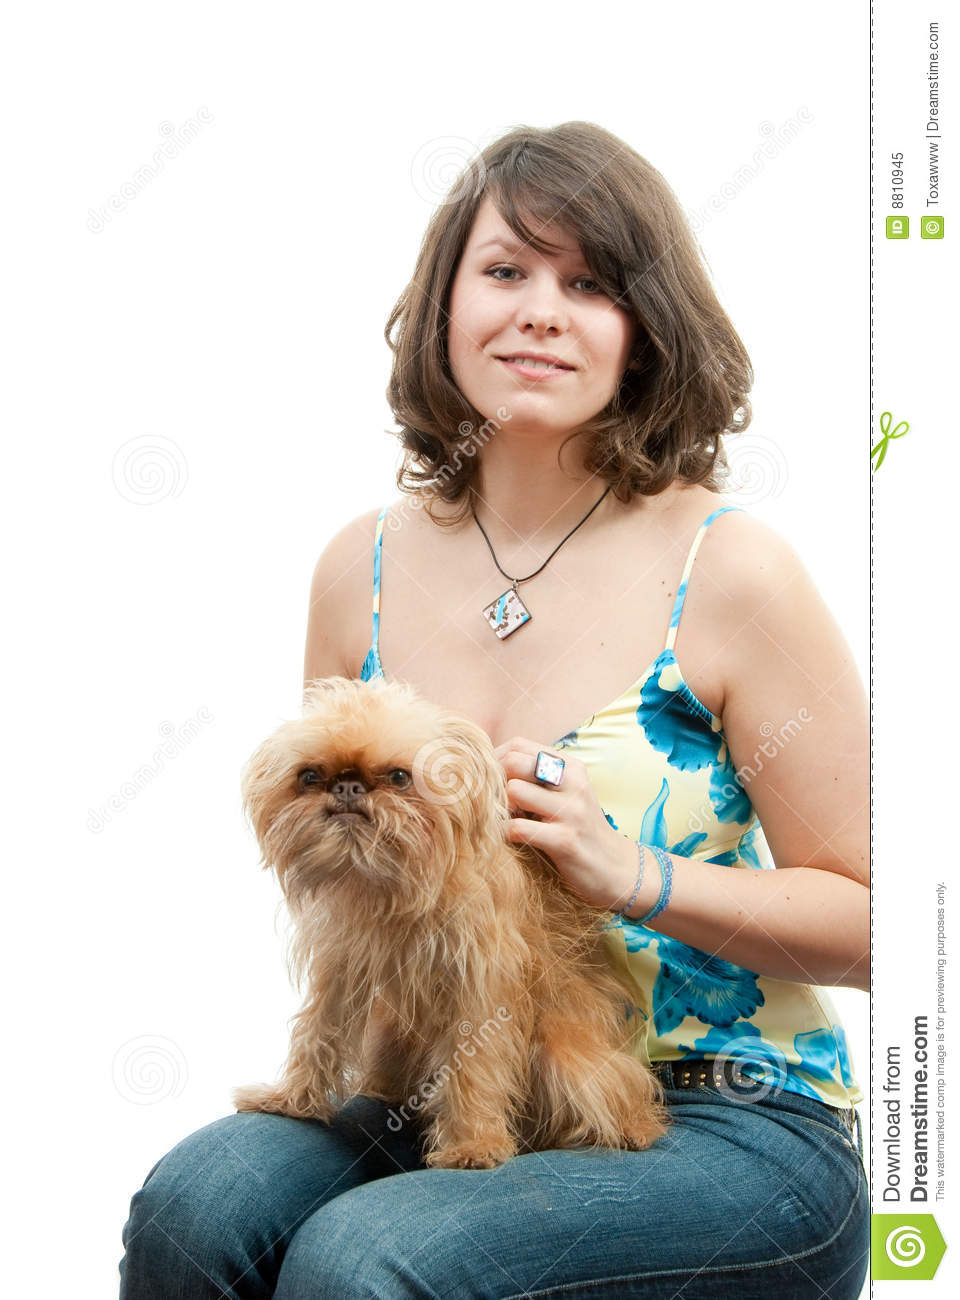 Young Woman With Dog Royalty Free Stock Photo - Image: 8810945